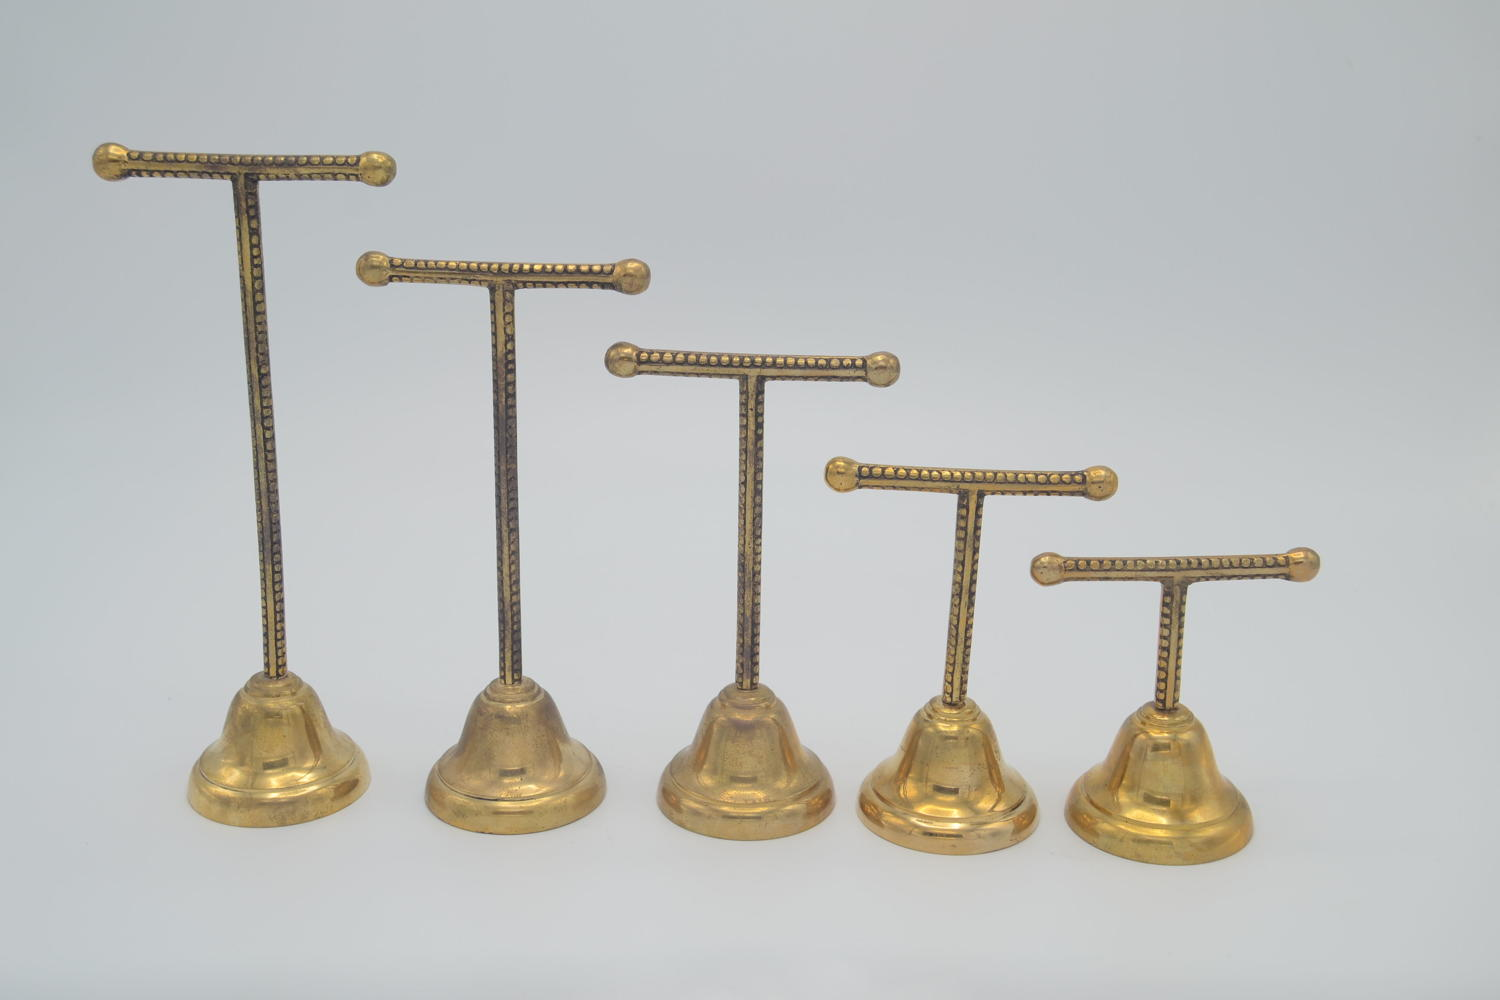 Vintage Antique Style Shoe Stands